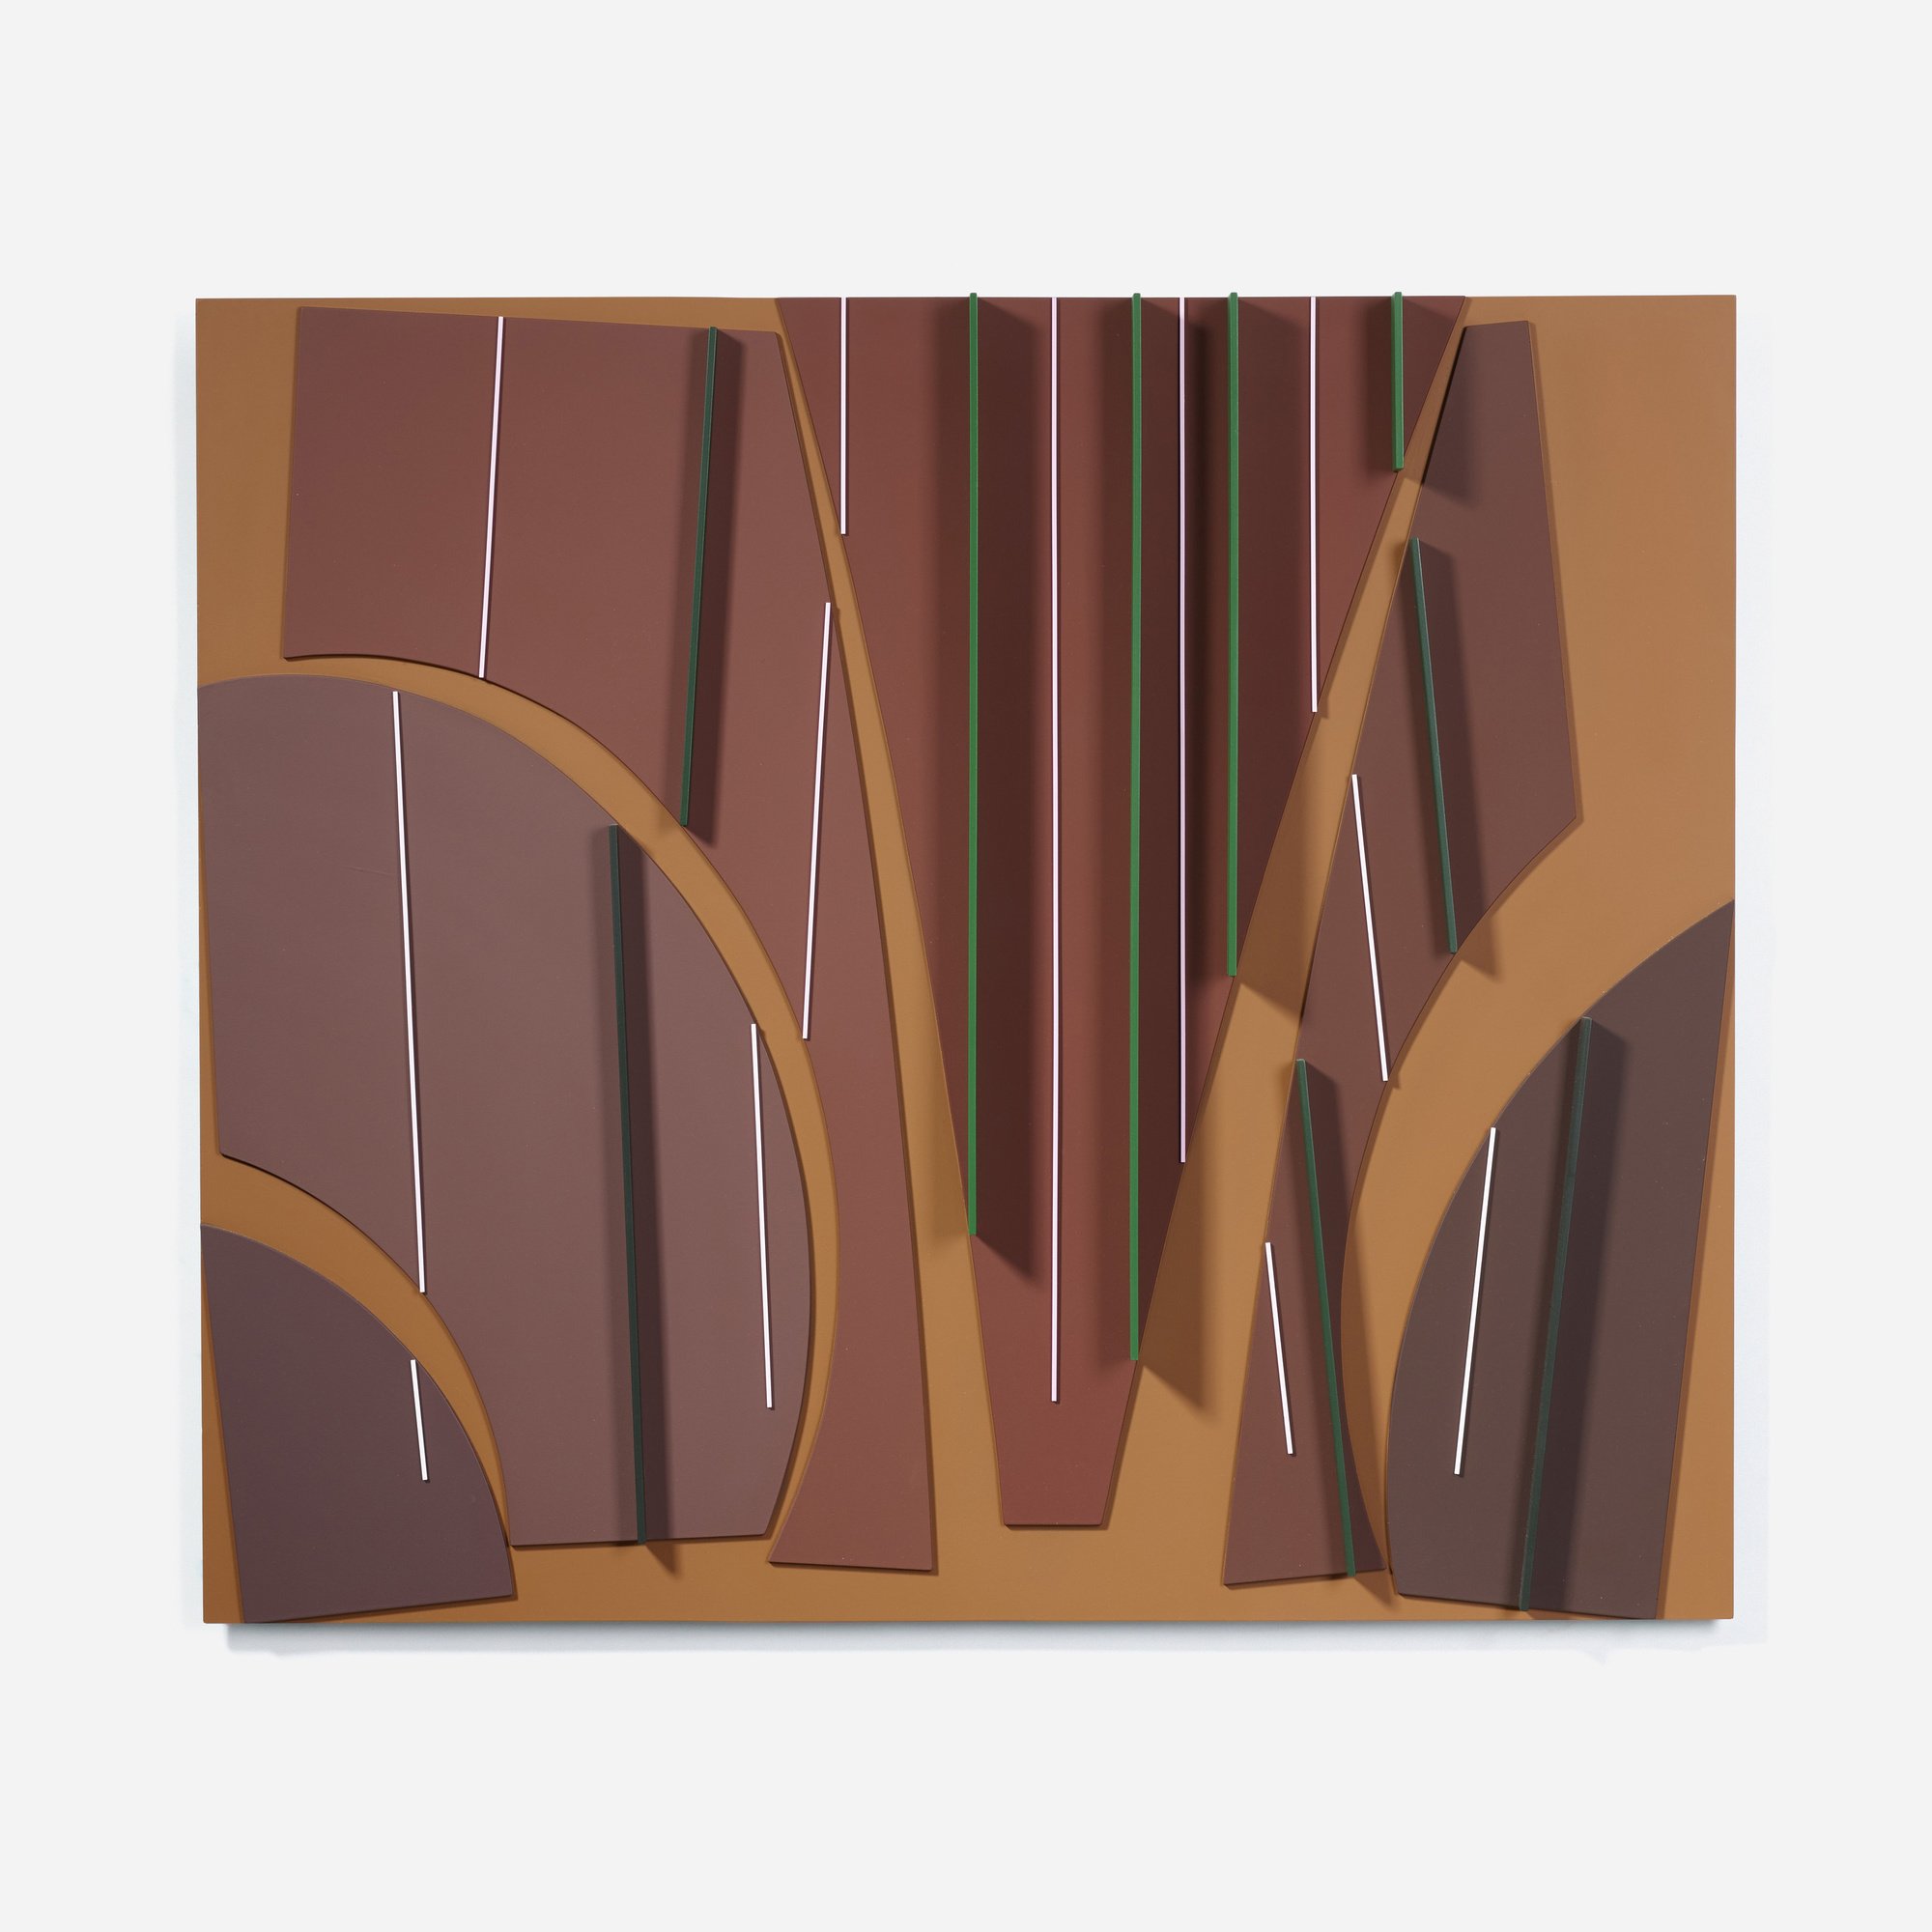 111: David Barr / Structurist Relief No. 310 (1 of 4)